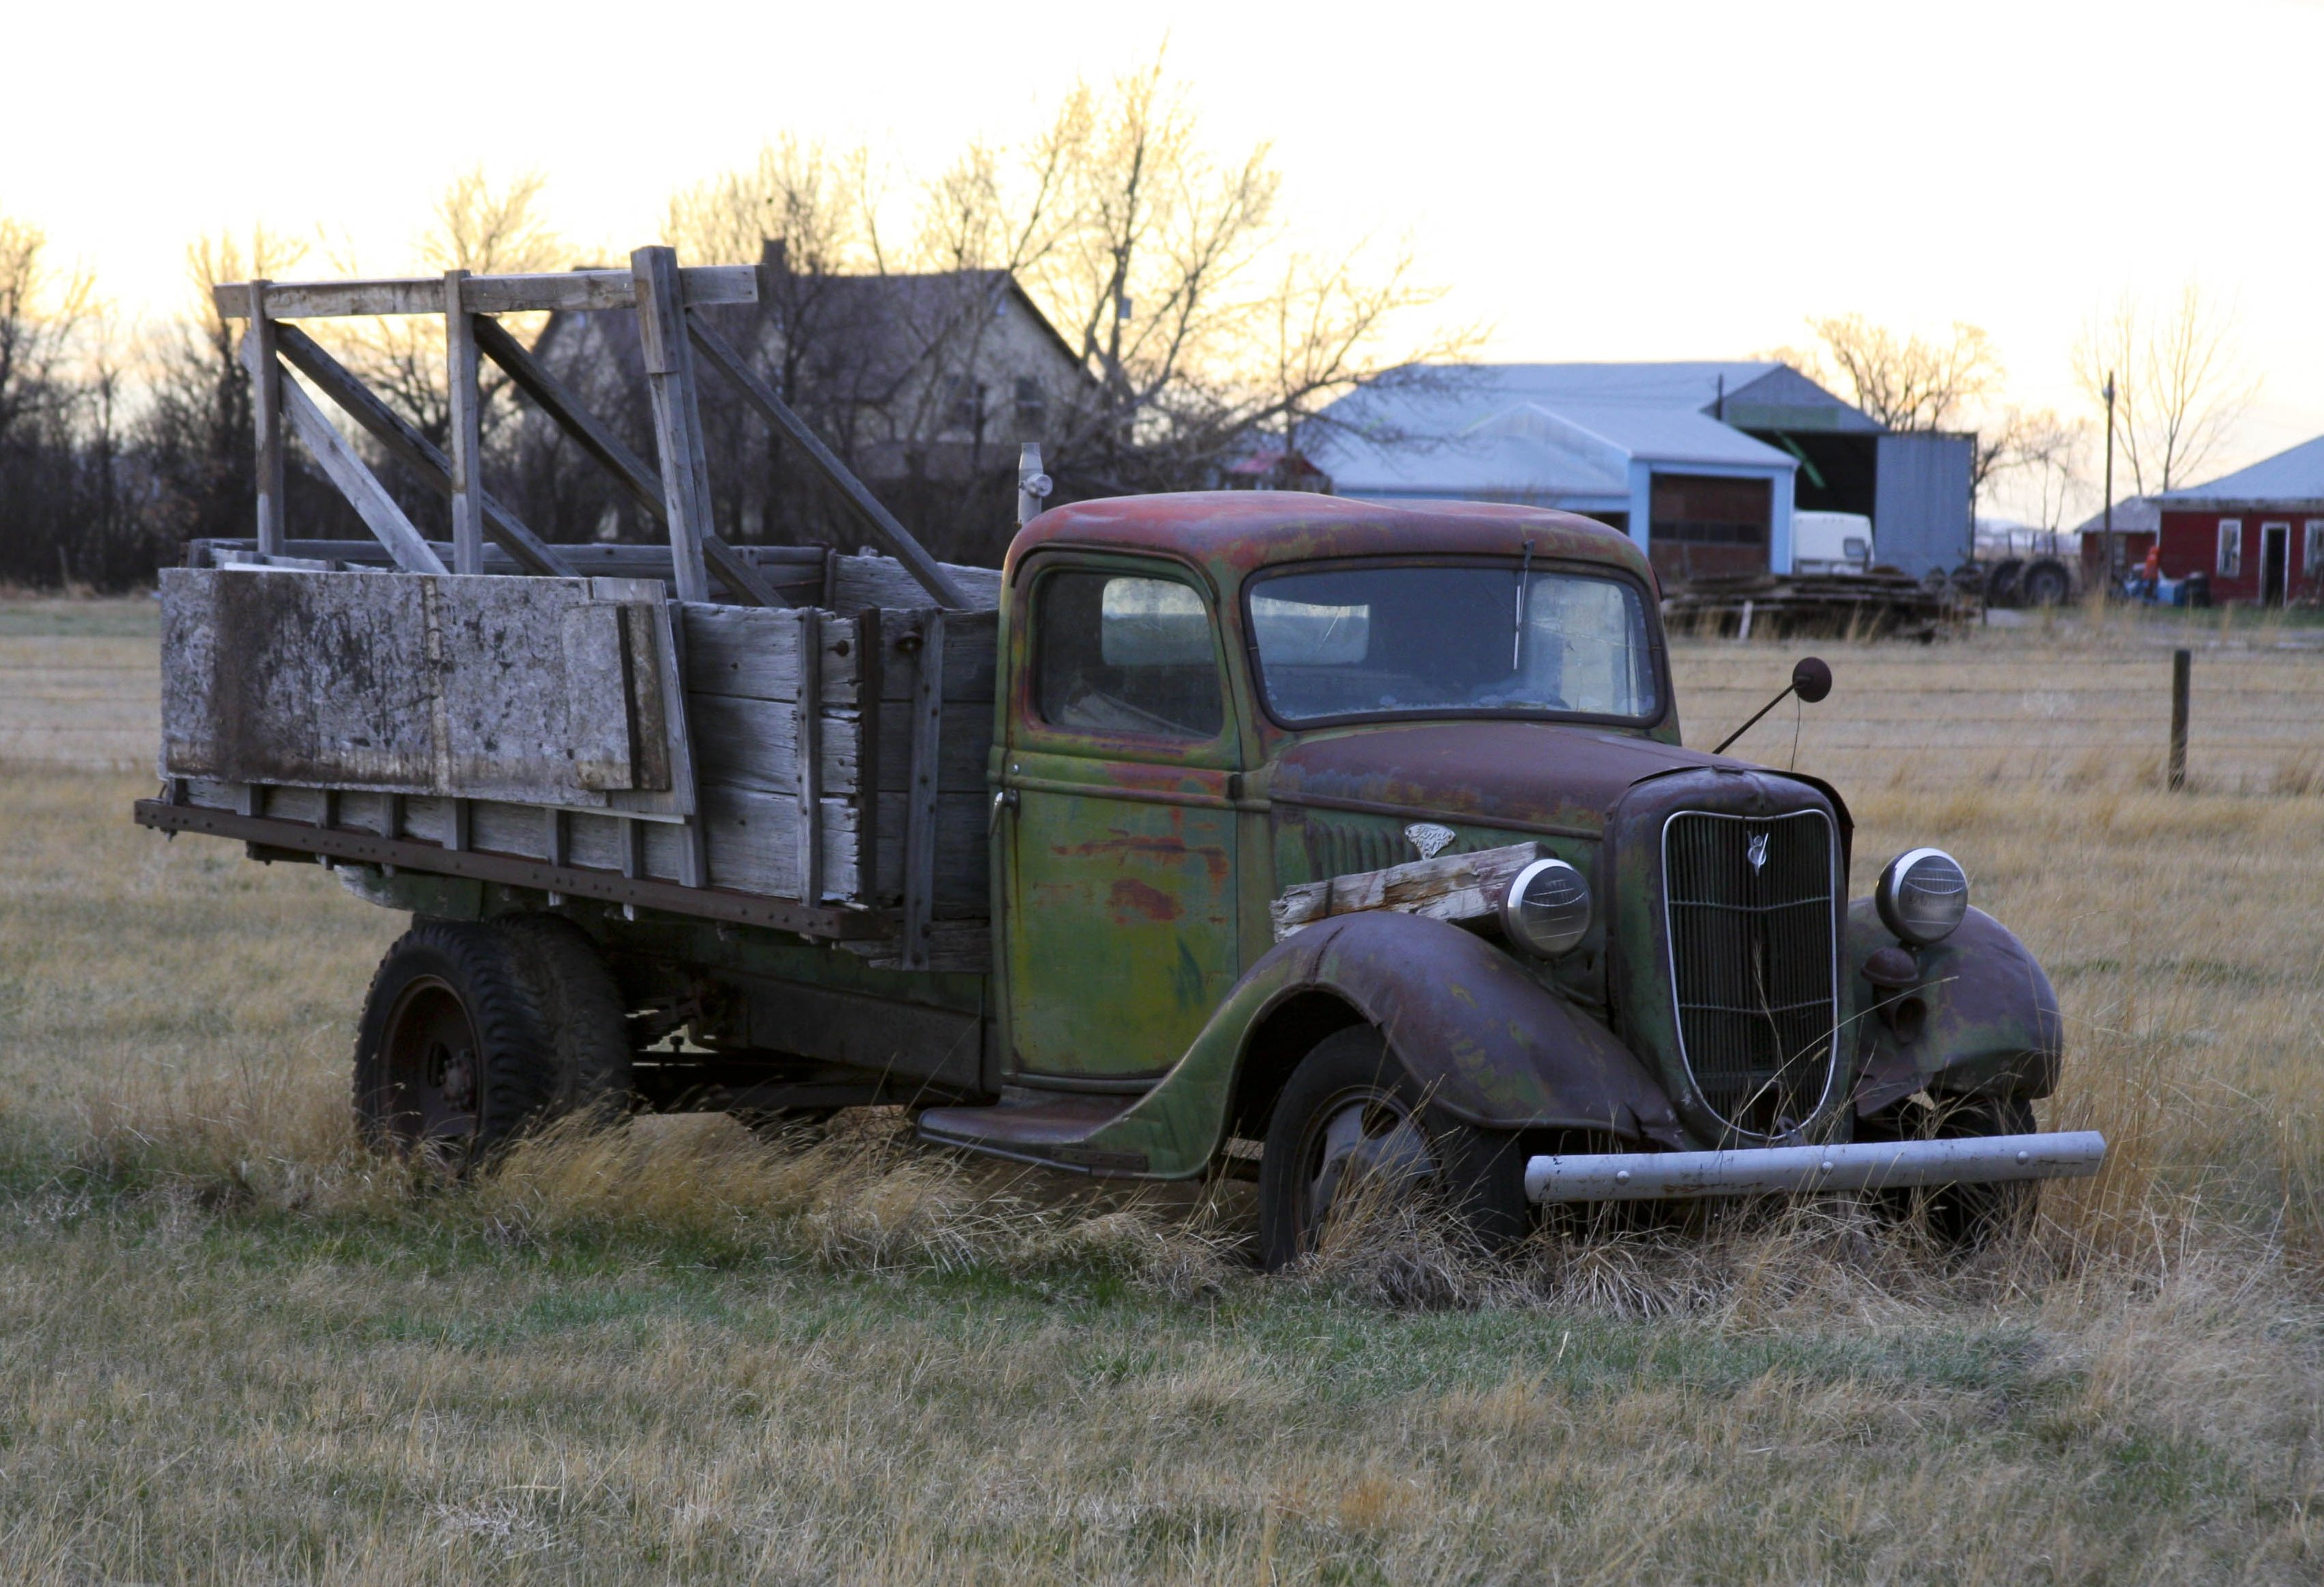 File:Rusty Old Ford Truck (3491076255).jpg - Wikimedia Commons